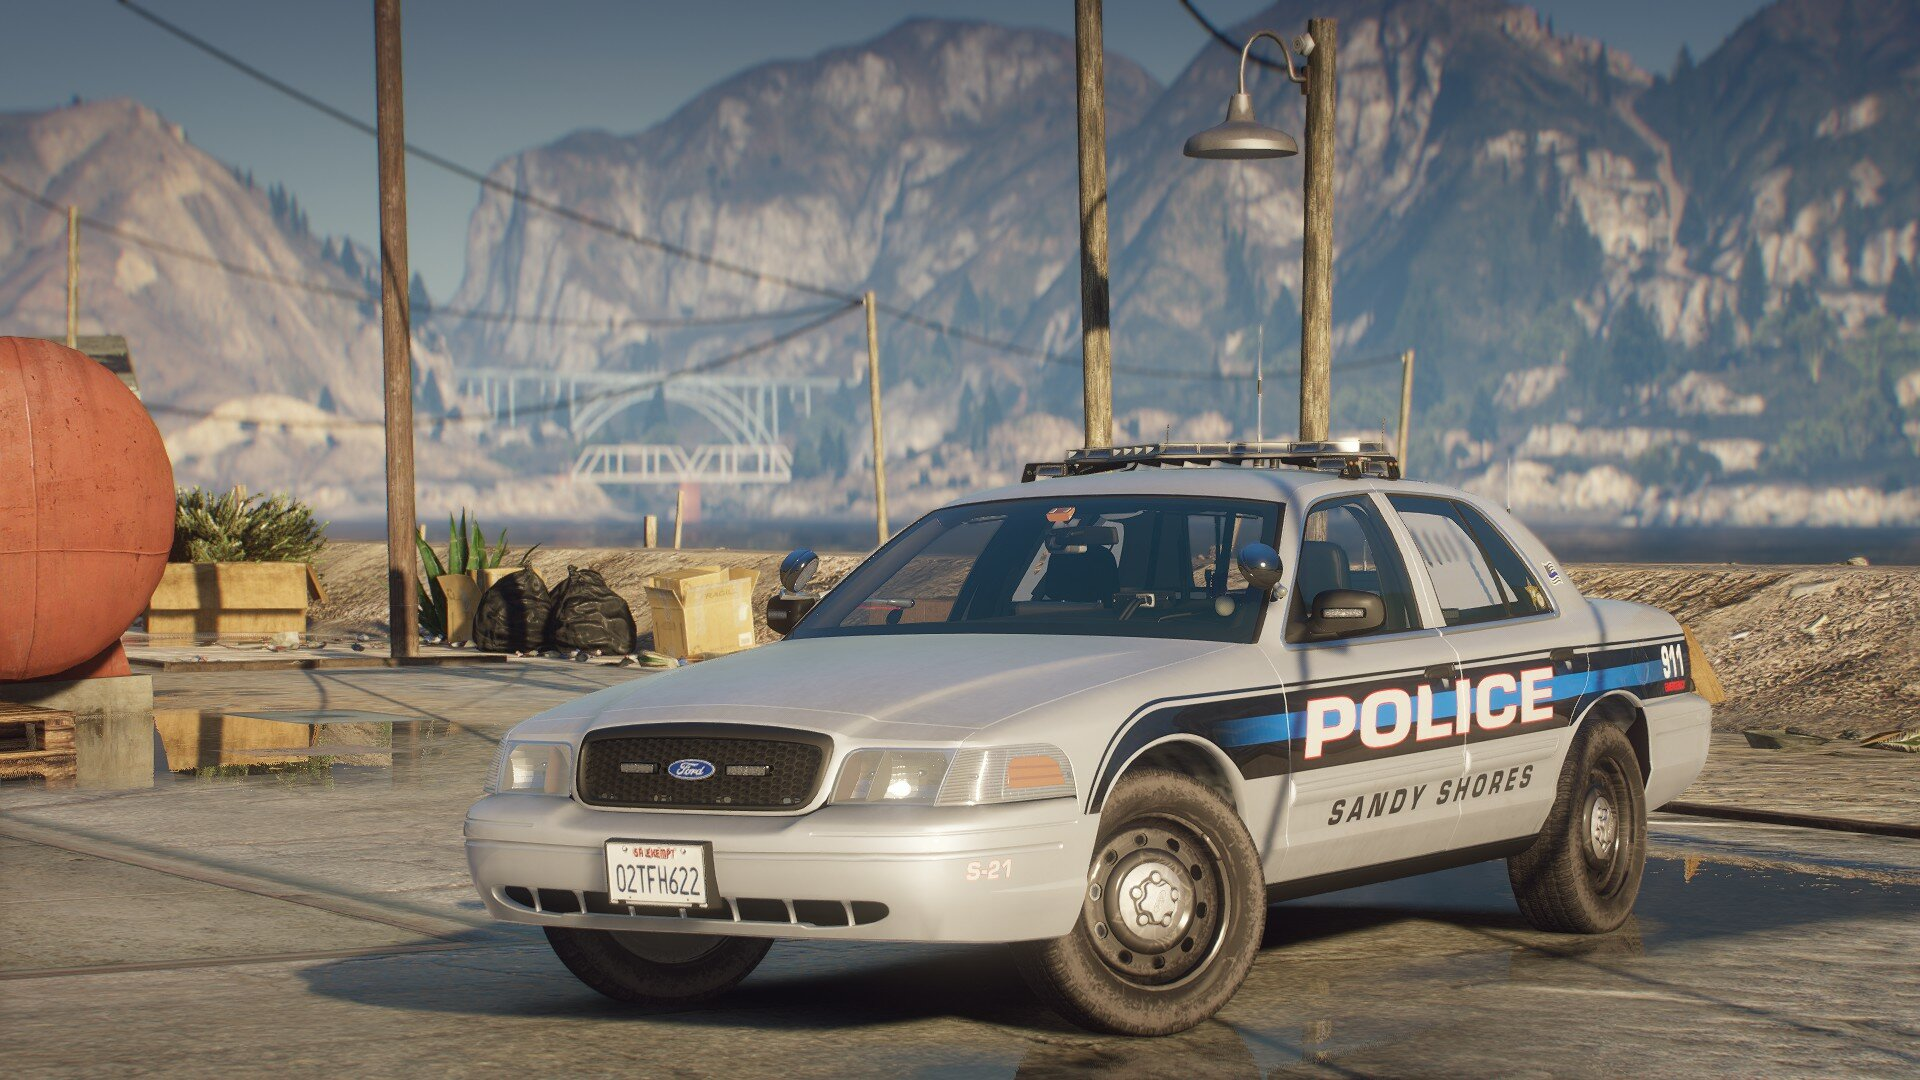 Sandy Shores PD Texture pack